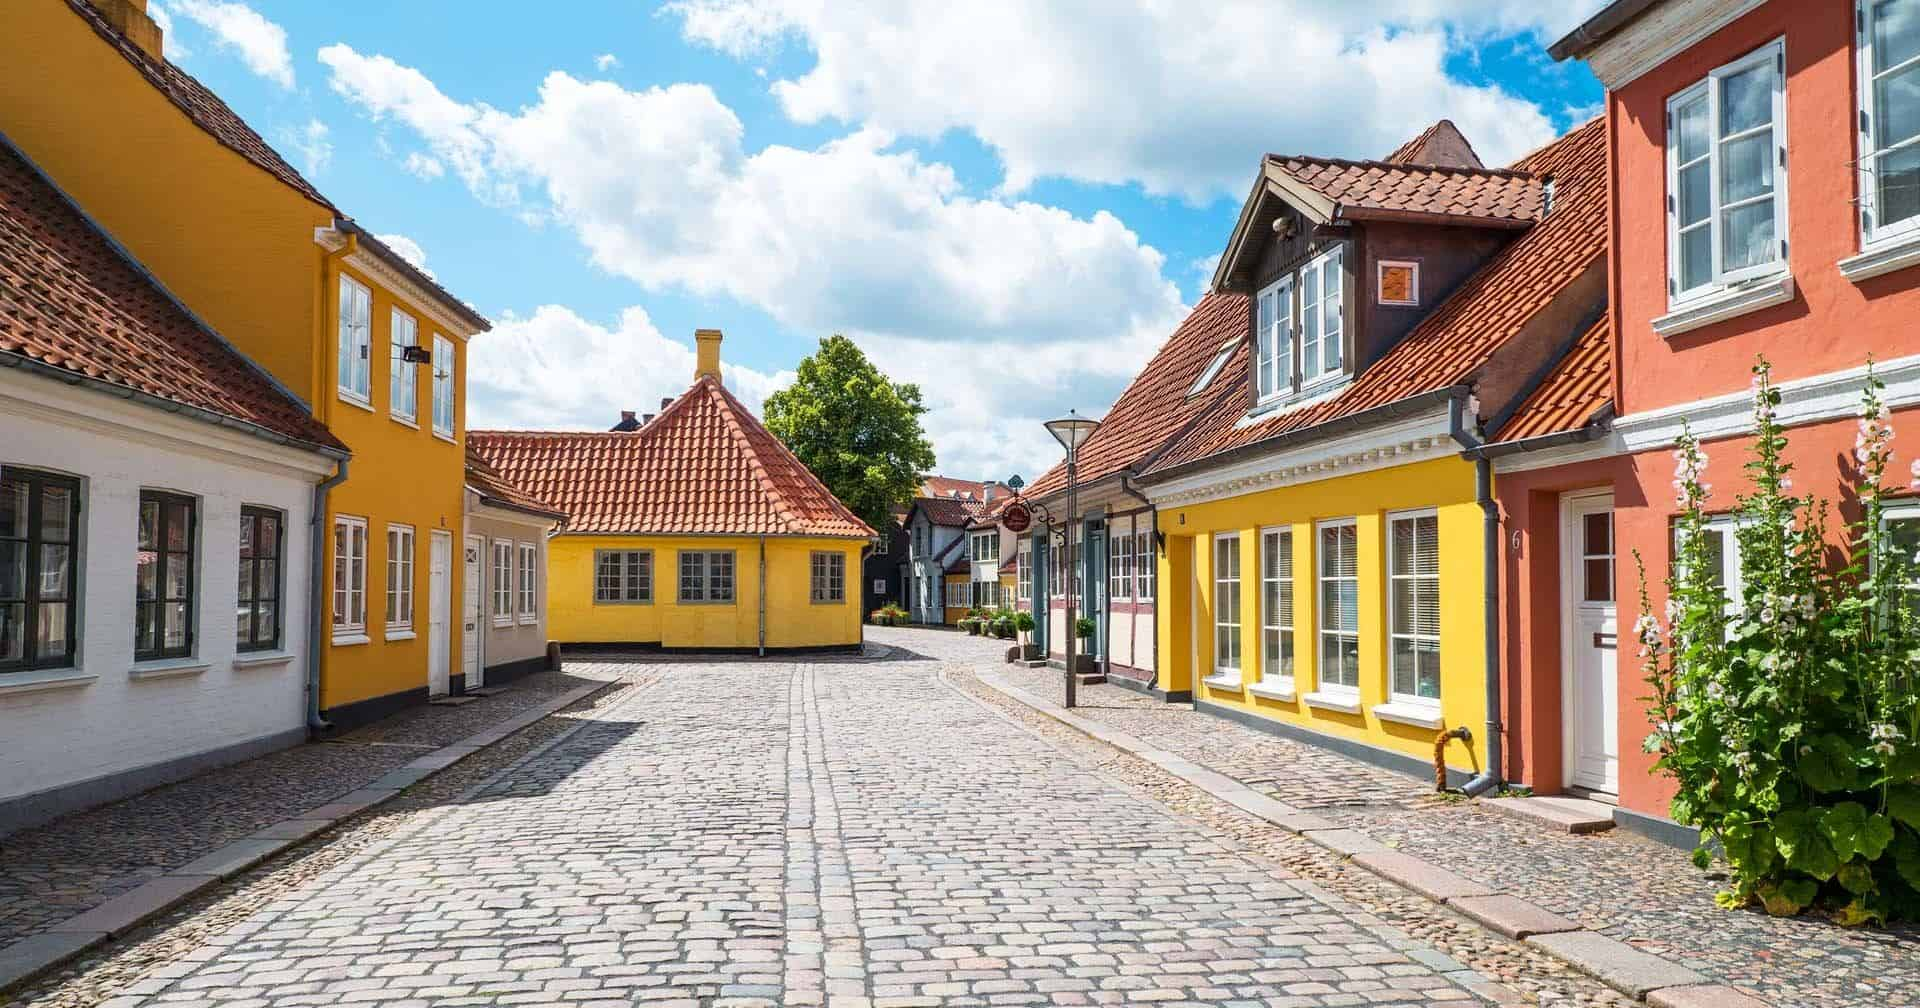 top day trips from copenhagen denmark featured